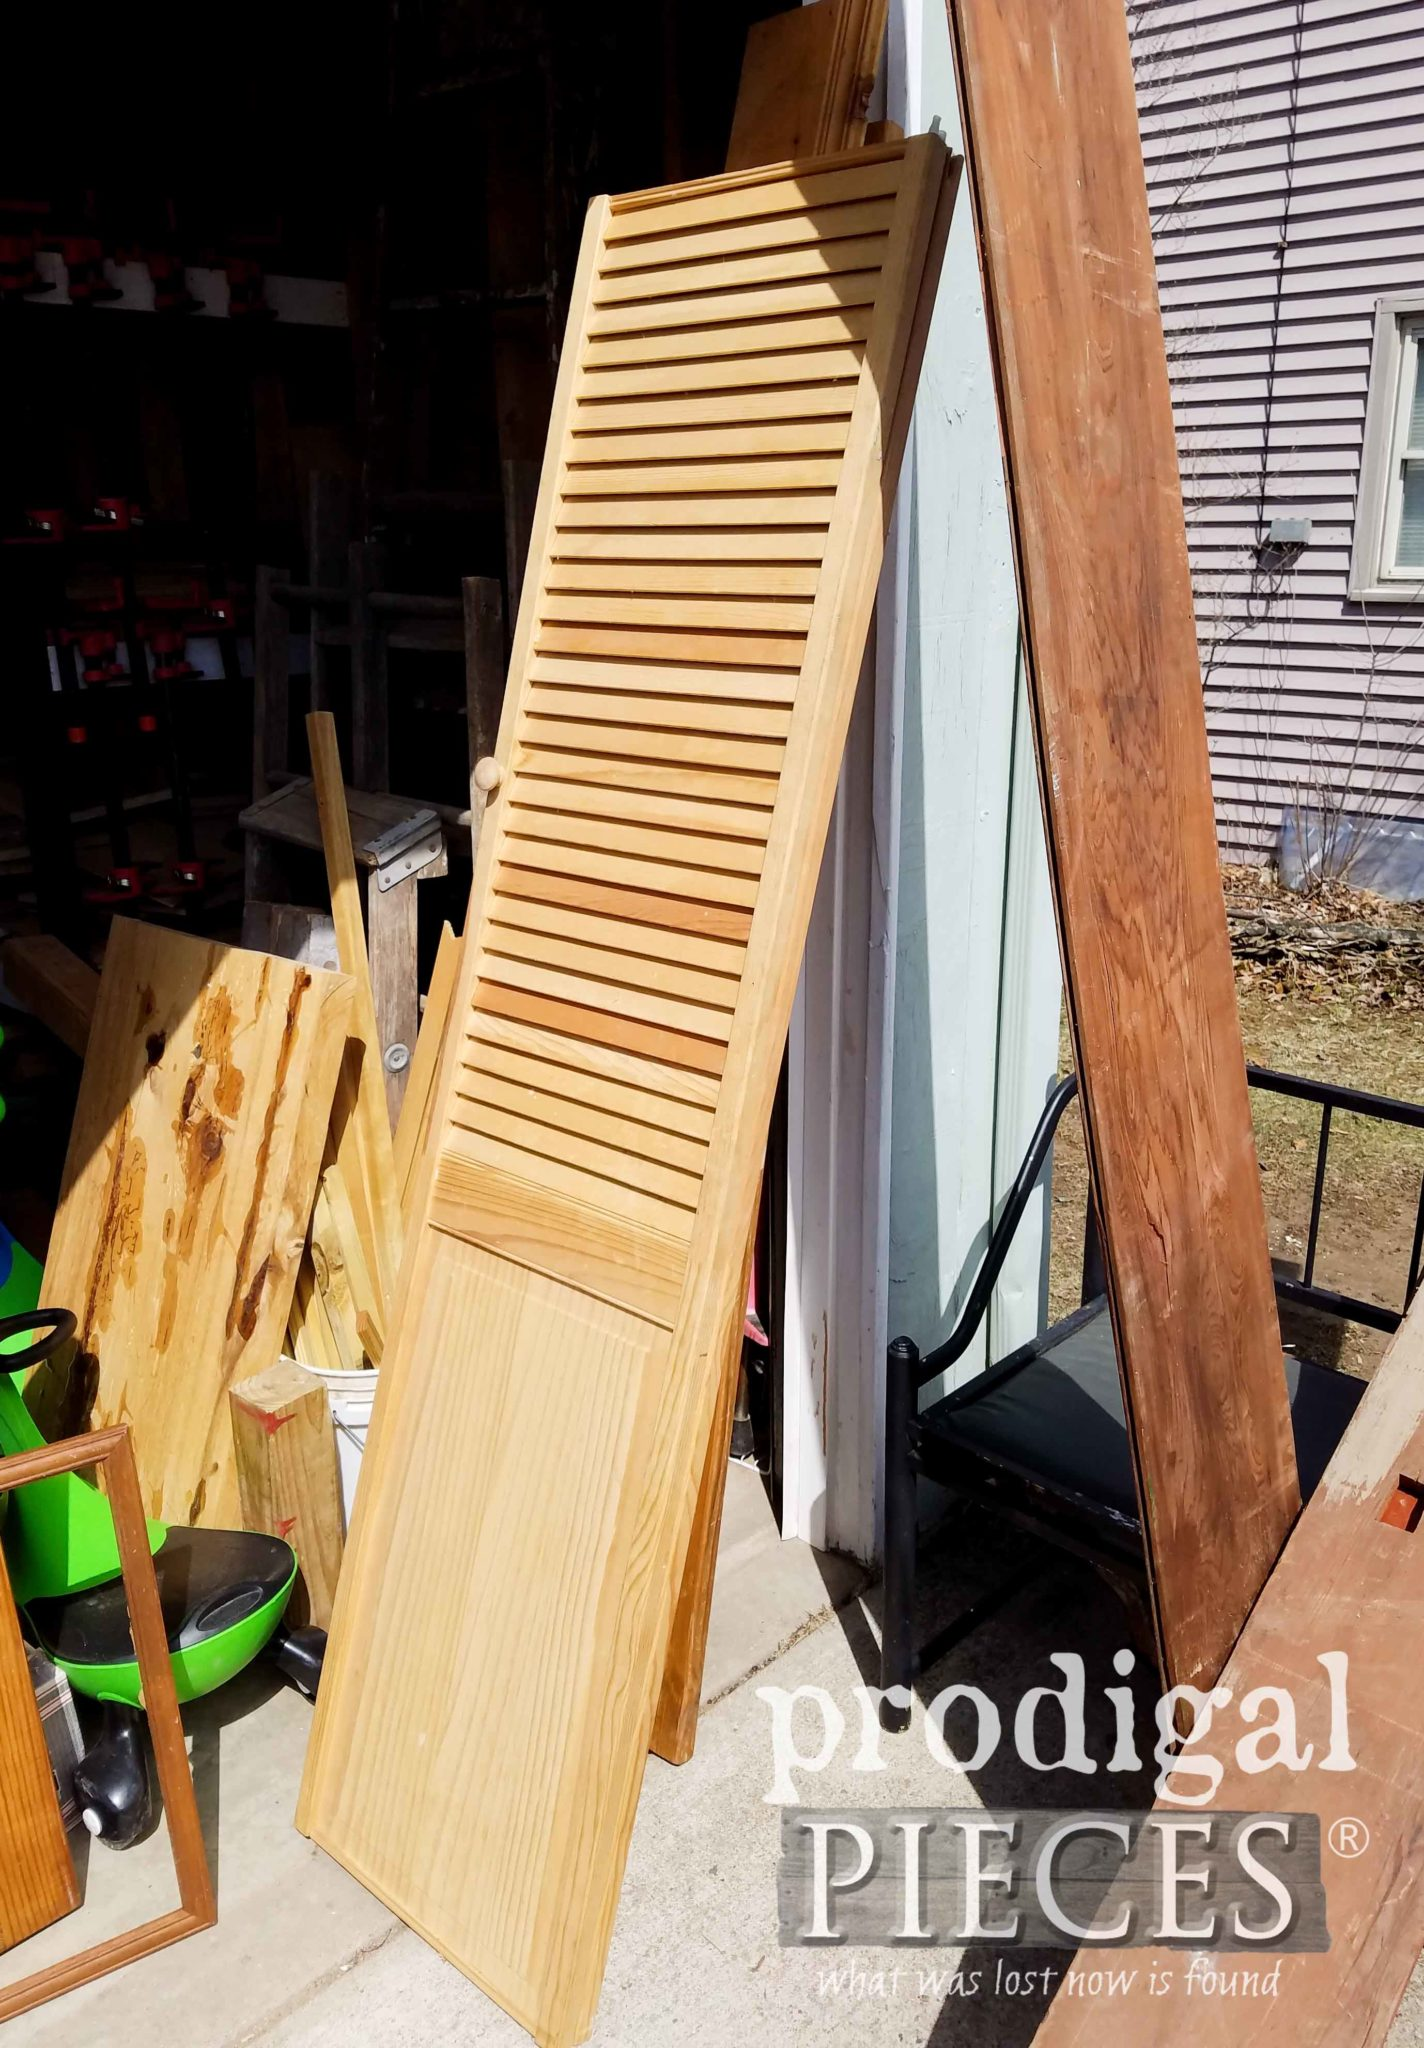 Wooden Doors Found Curbside by Prodigal Pieces | prodigalpieces.com